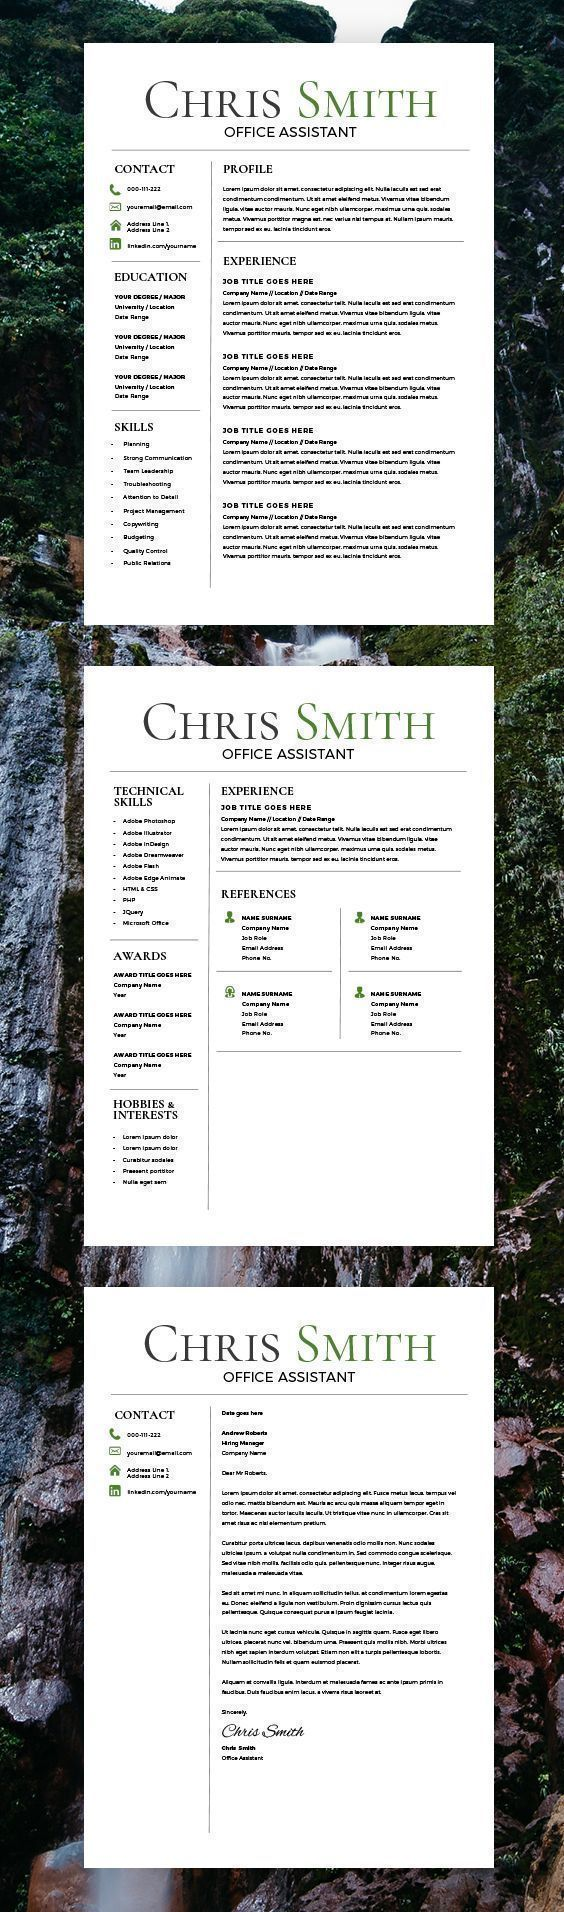 computer programs for resume%0A Trending Resume Template  CV Template  Free Cover Letter  MS Word Mac PC